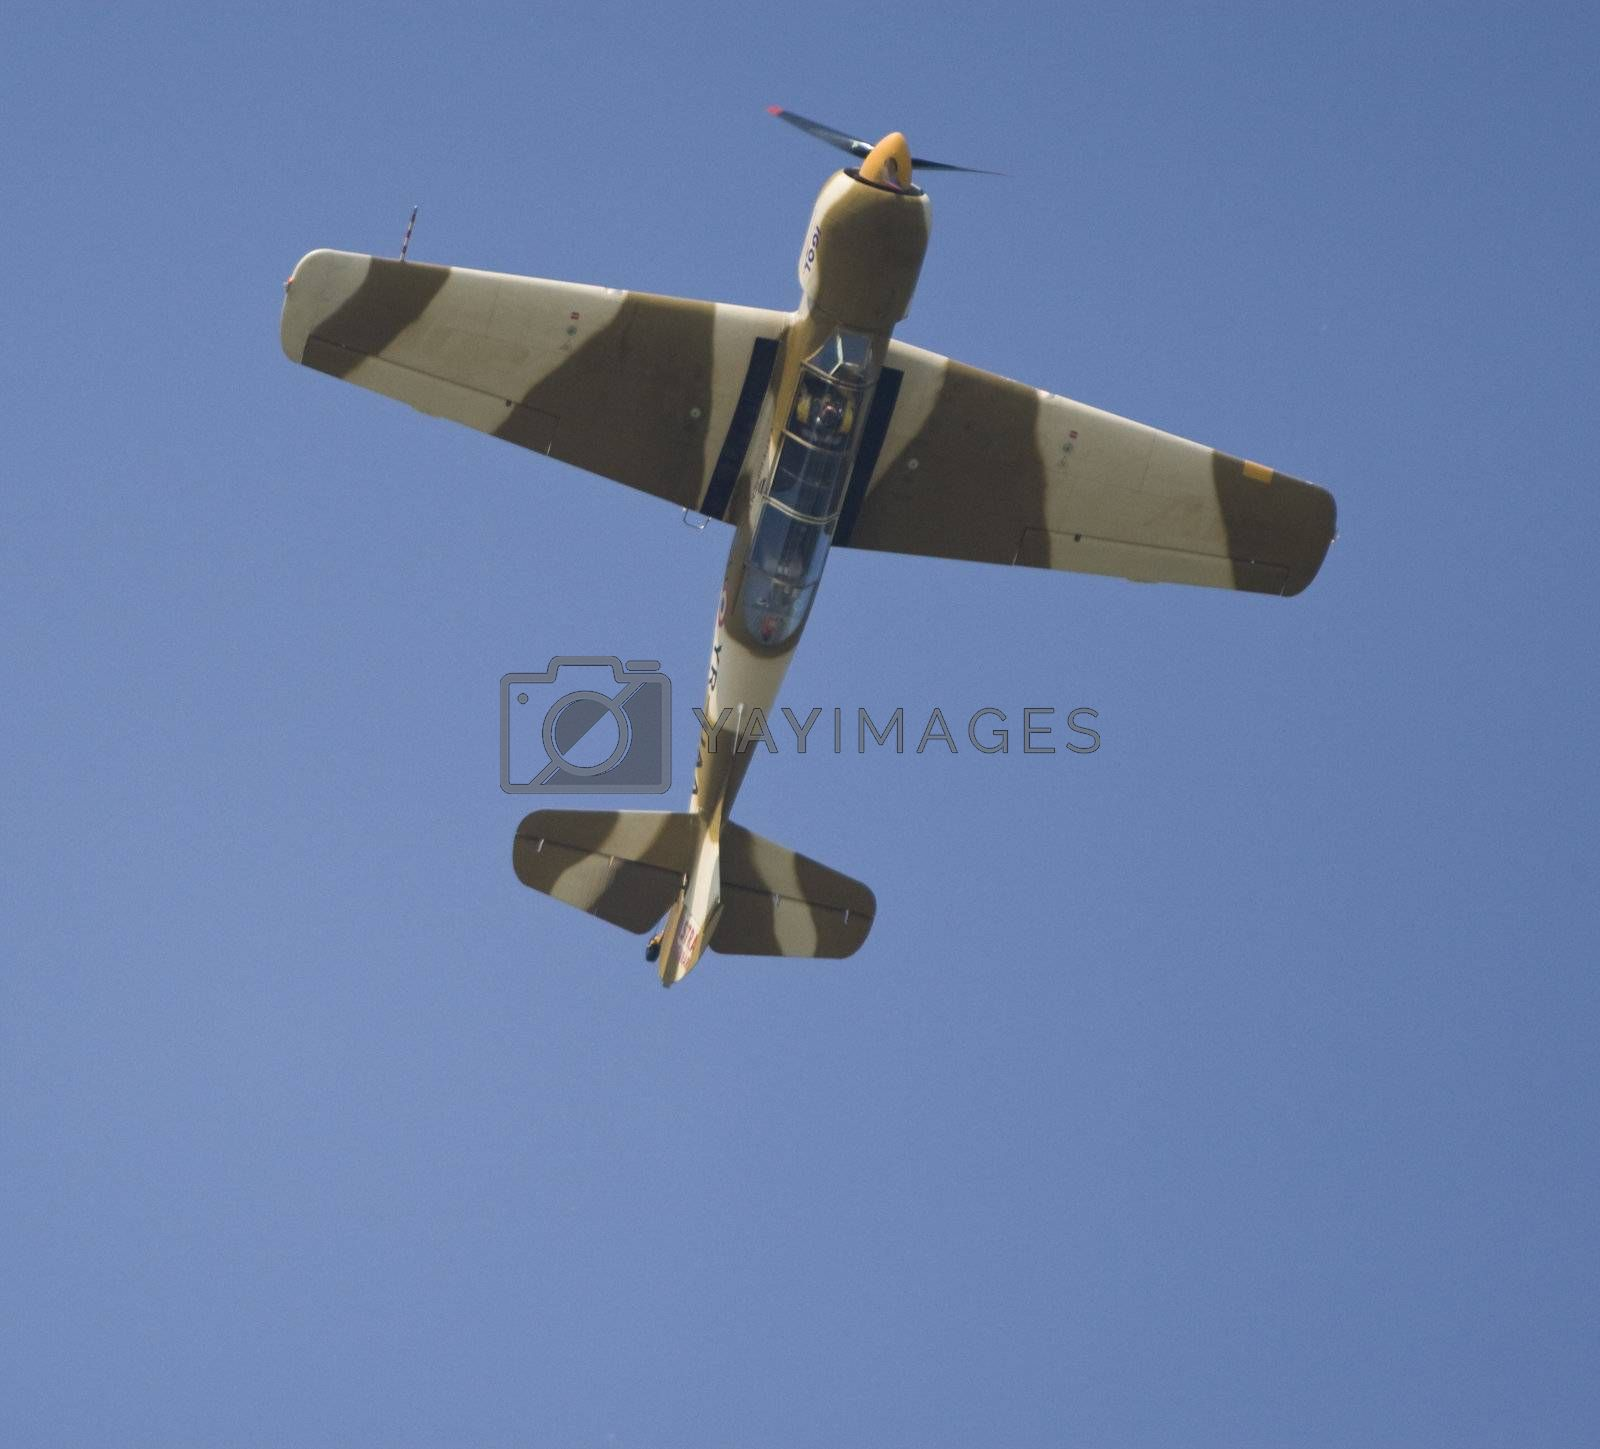 Royalty free image of Acrobatic airplane by MihaiDancaescu